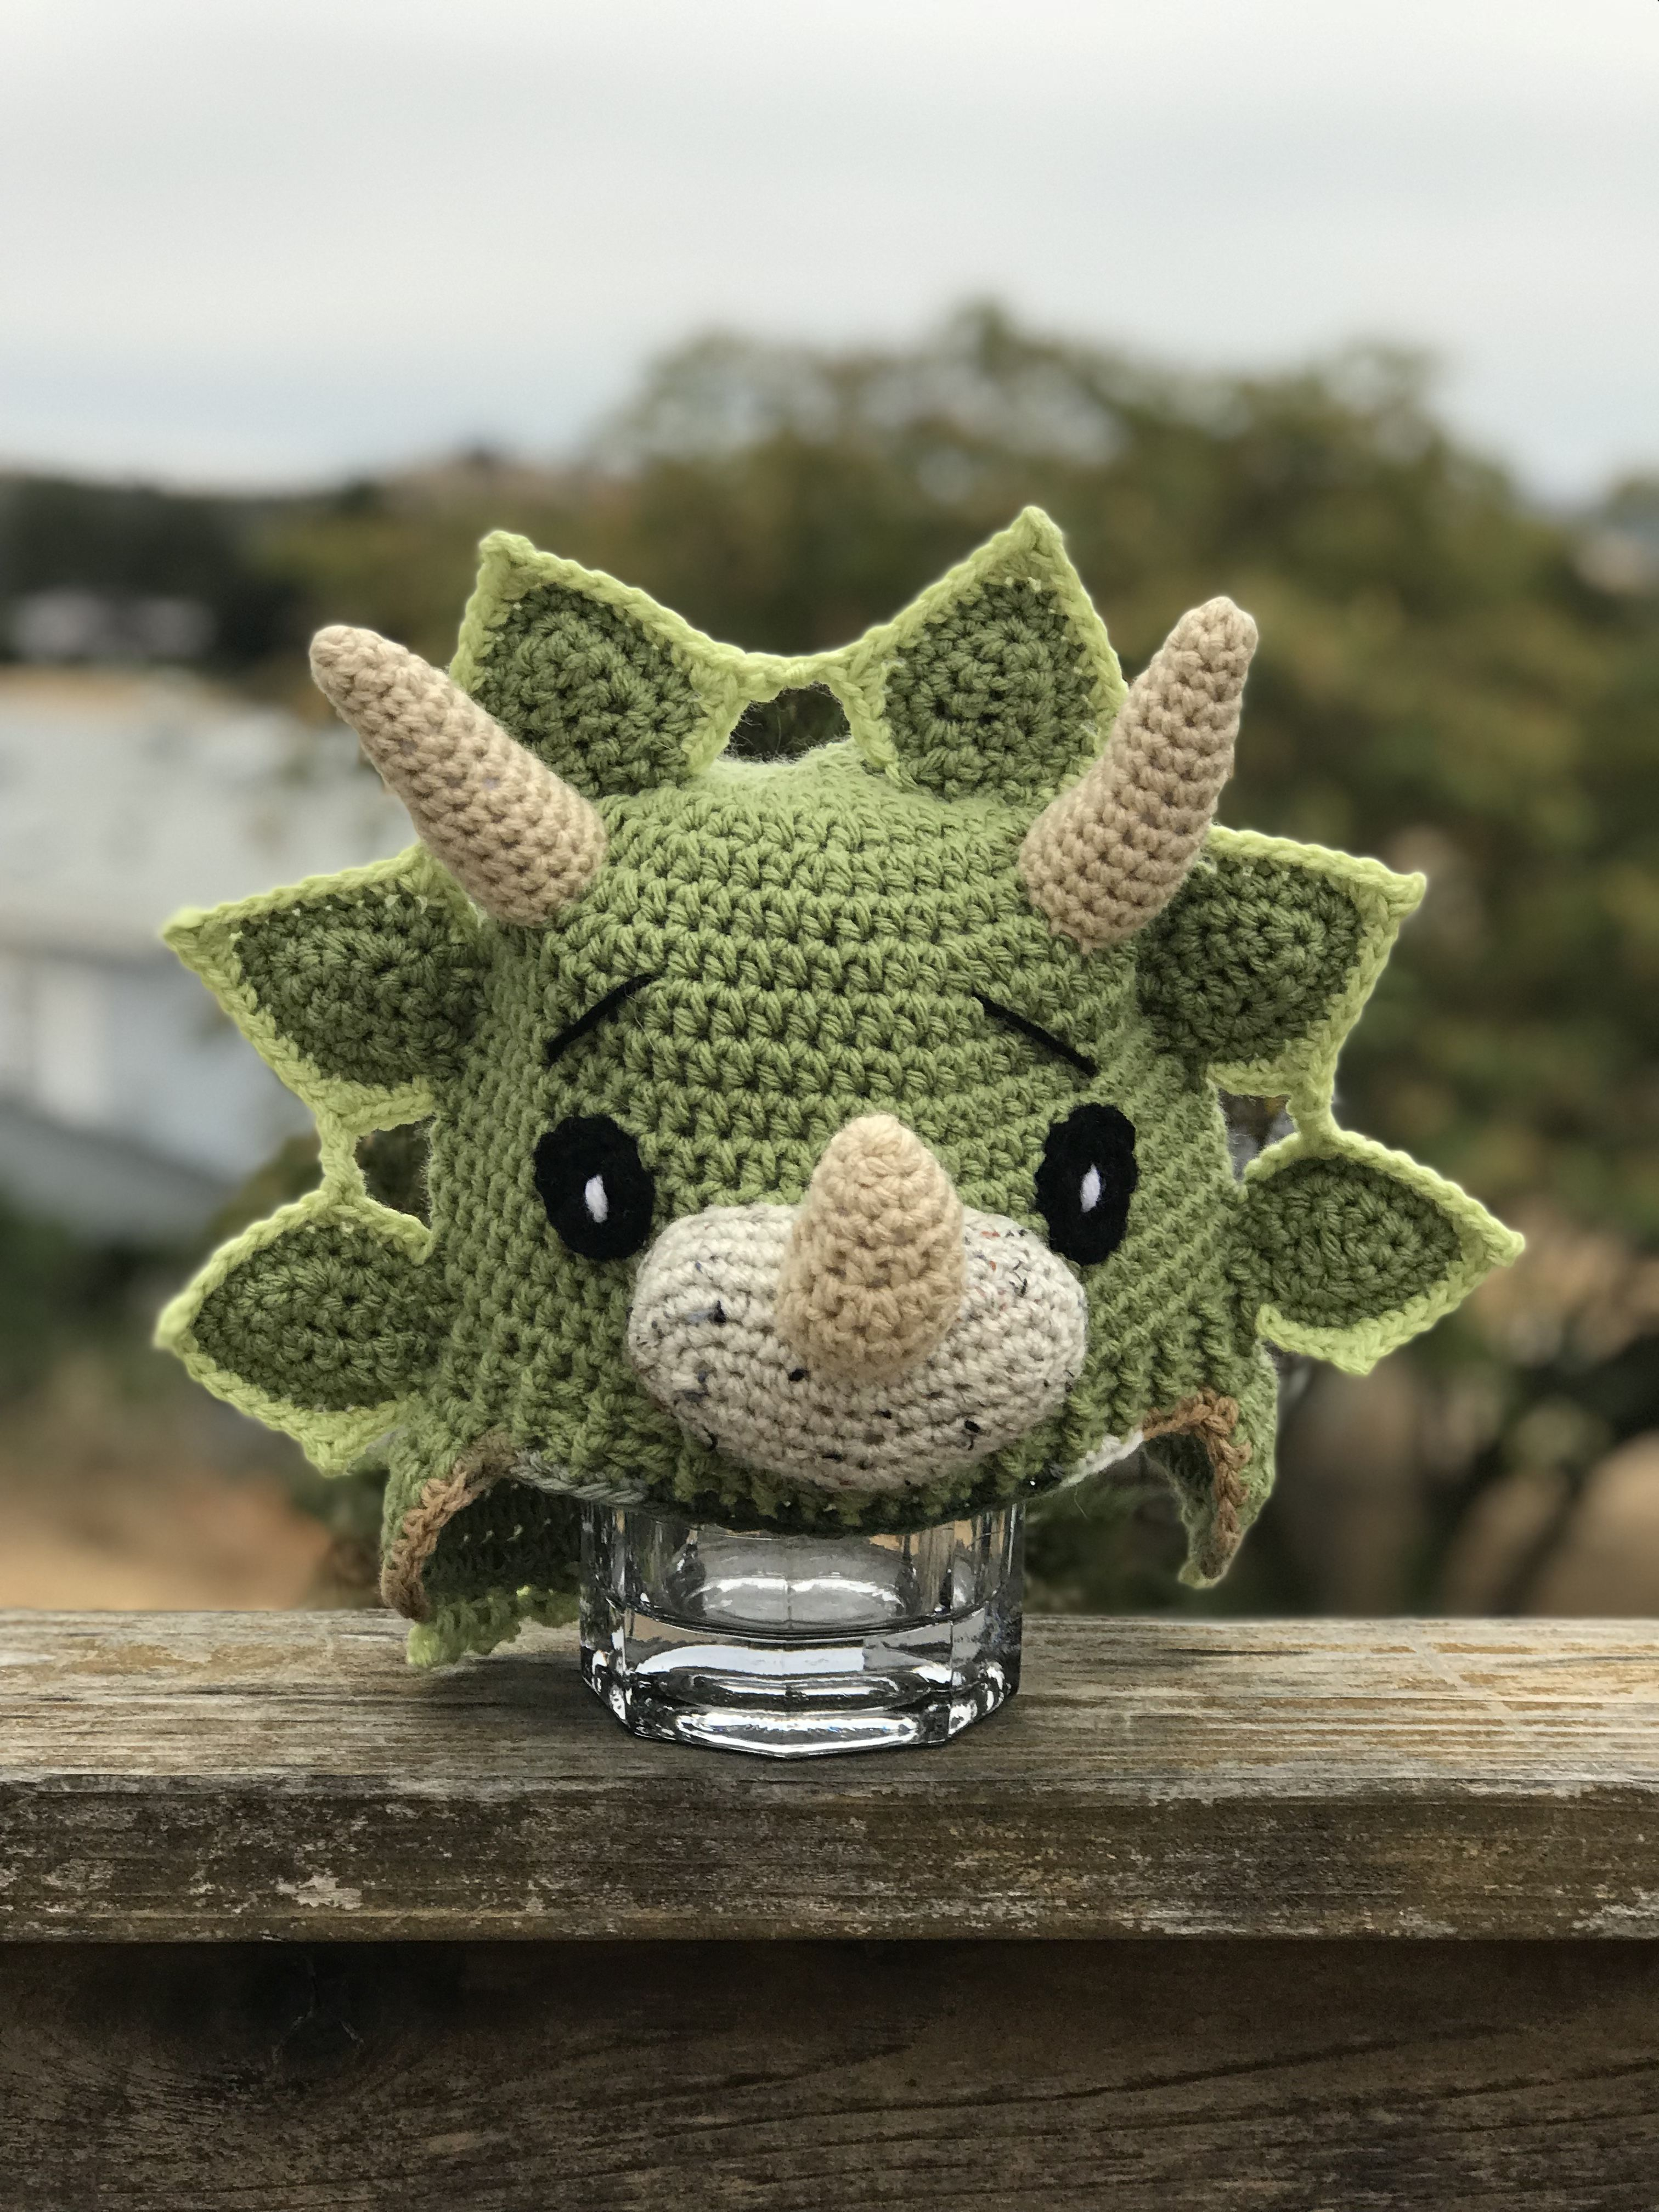 Crochet Triceratop Style Triceratops: Slippers Handmade